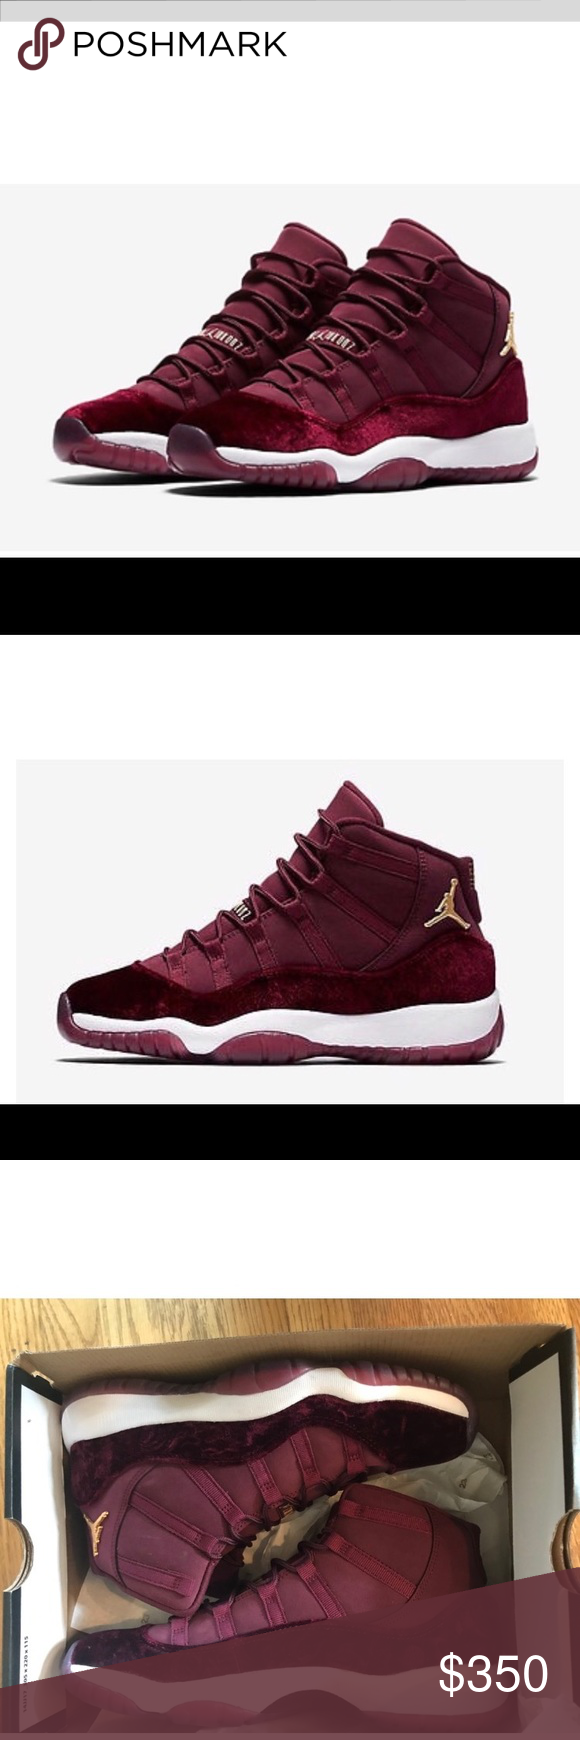 newest 42ebc 47cac Jordan 11 Red Velvet Burgundy Maroon Heiress 7.5 Air Jordan ...